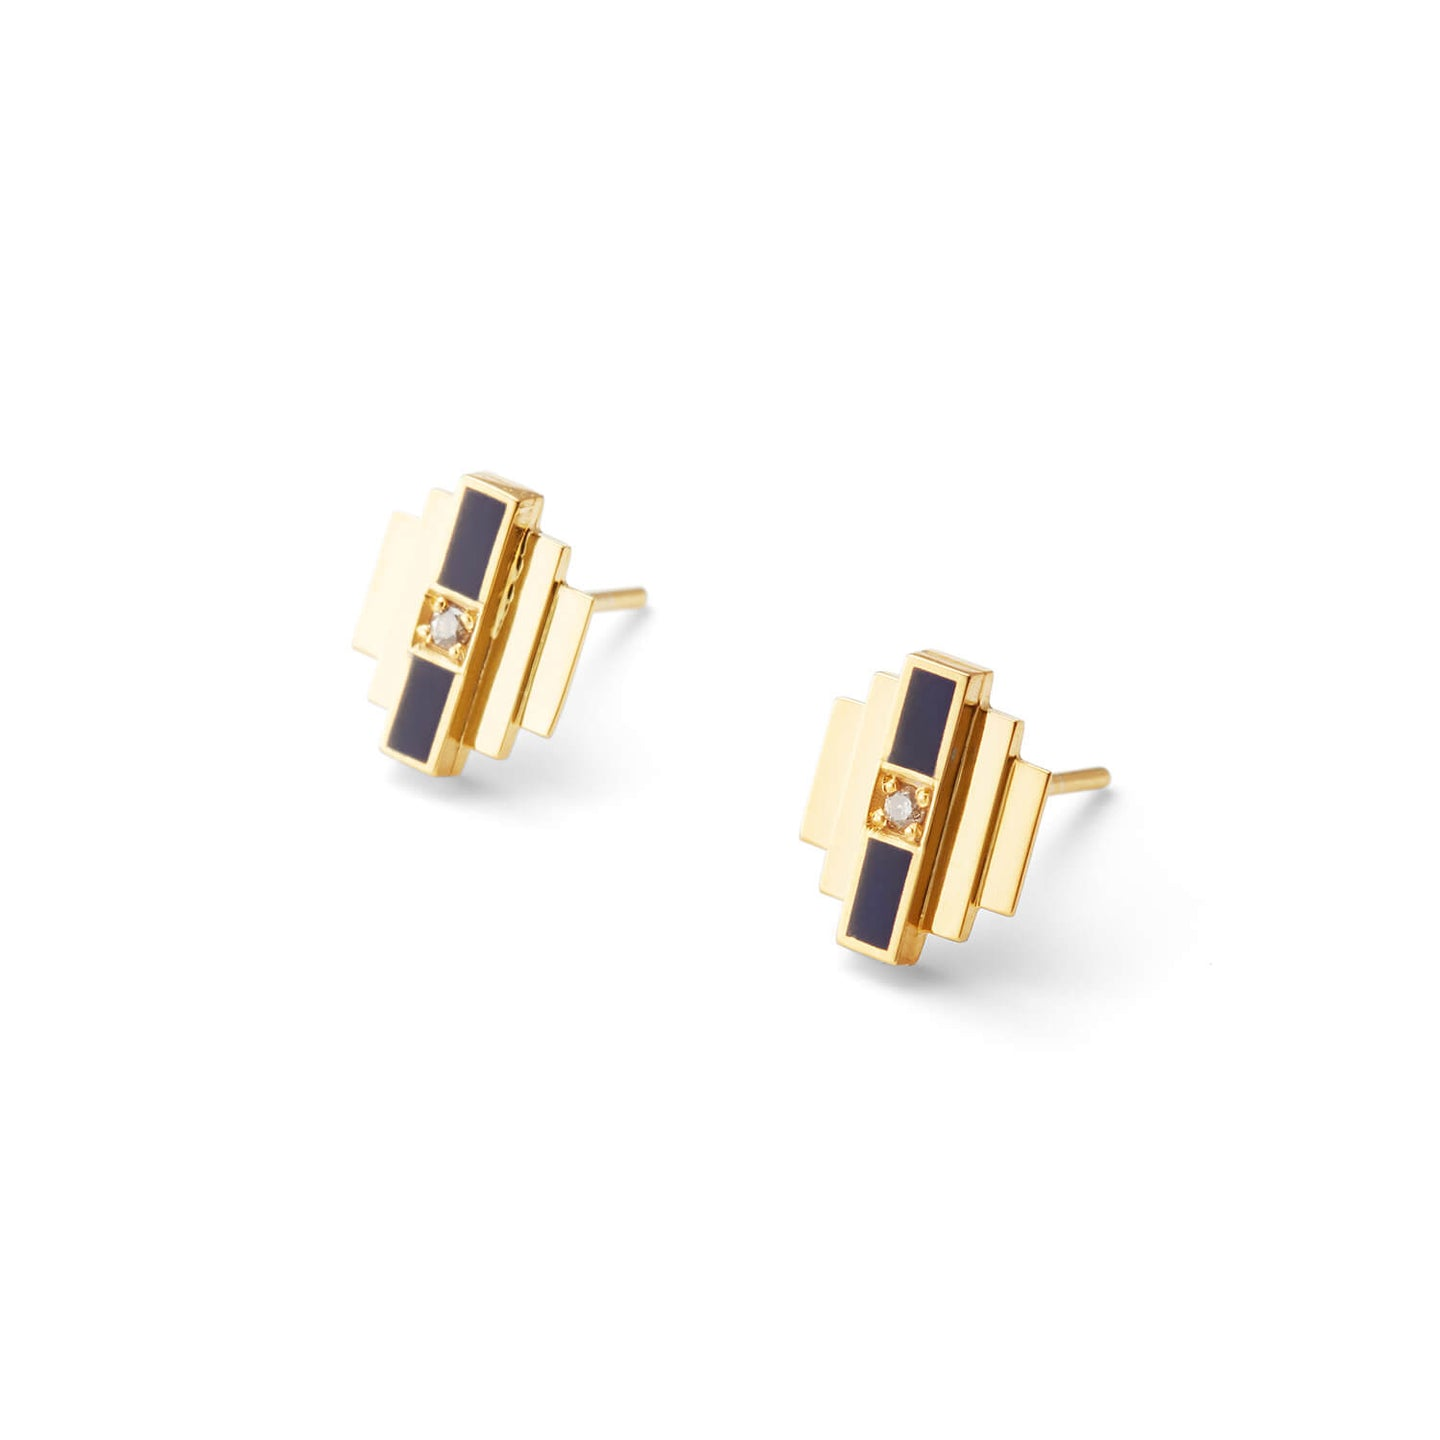 Gold Delaunay Diamond Stud Earrings with Black Enamel